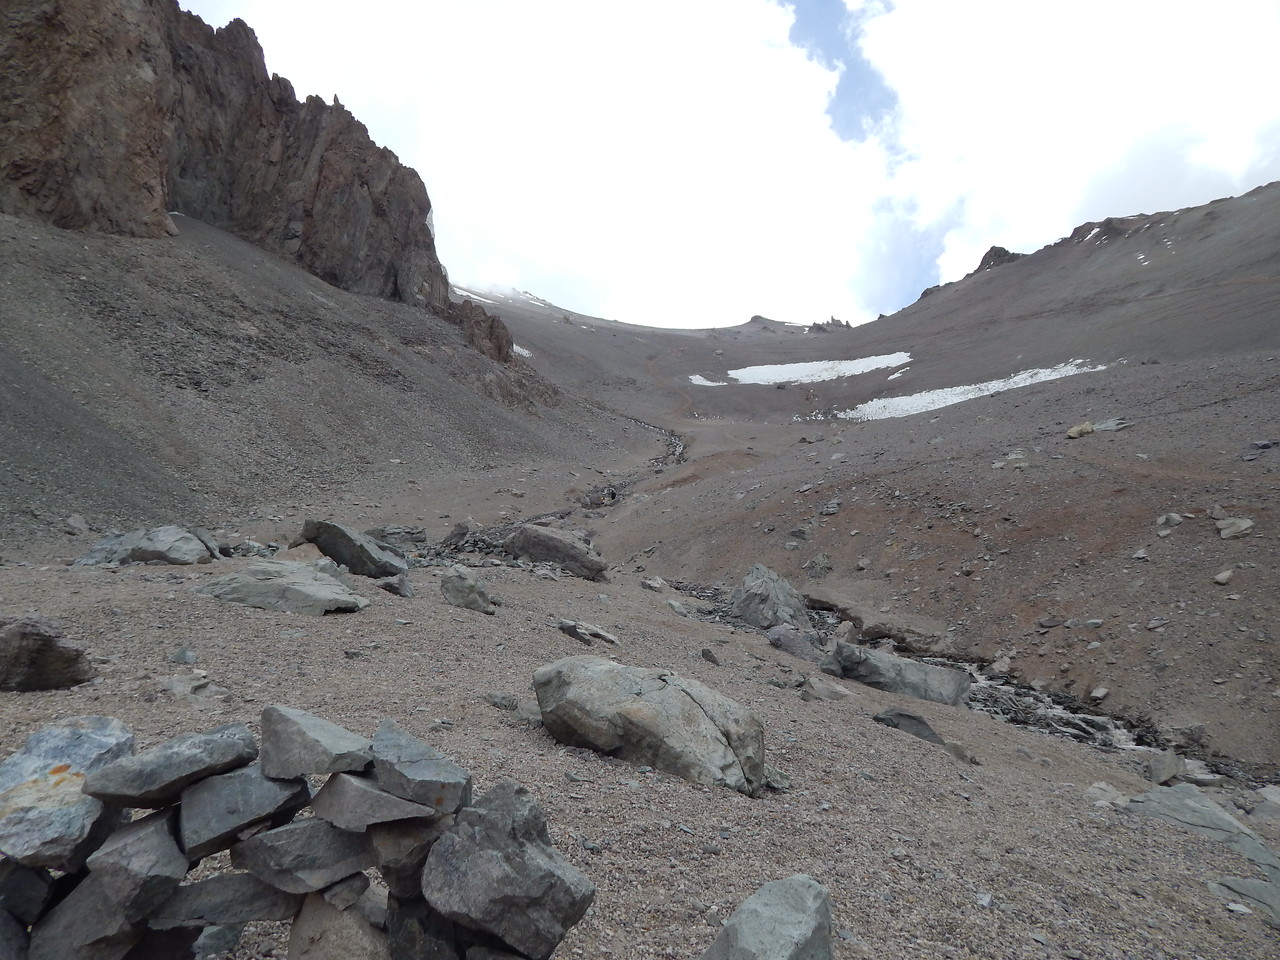 View from Camp 1 towards Camp 2